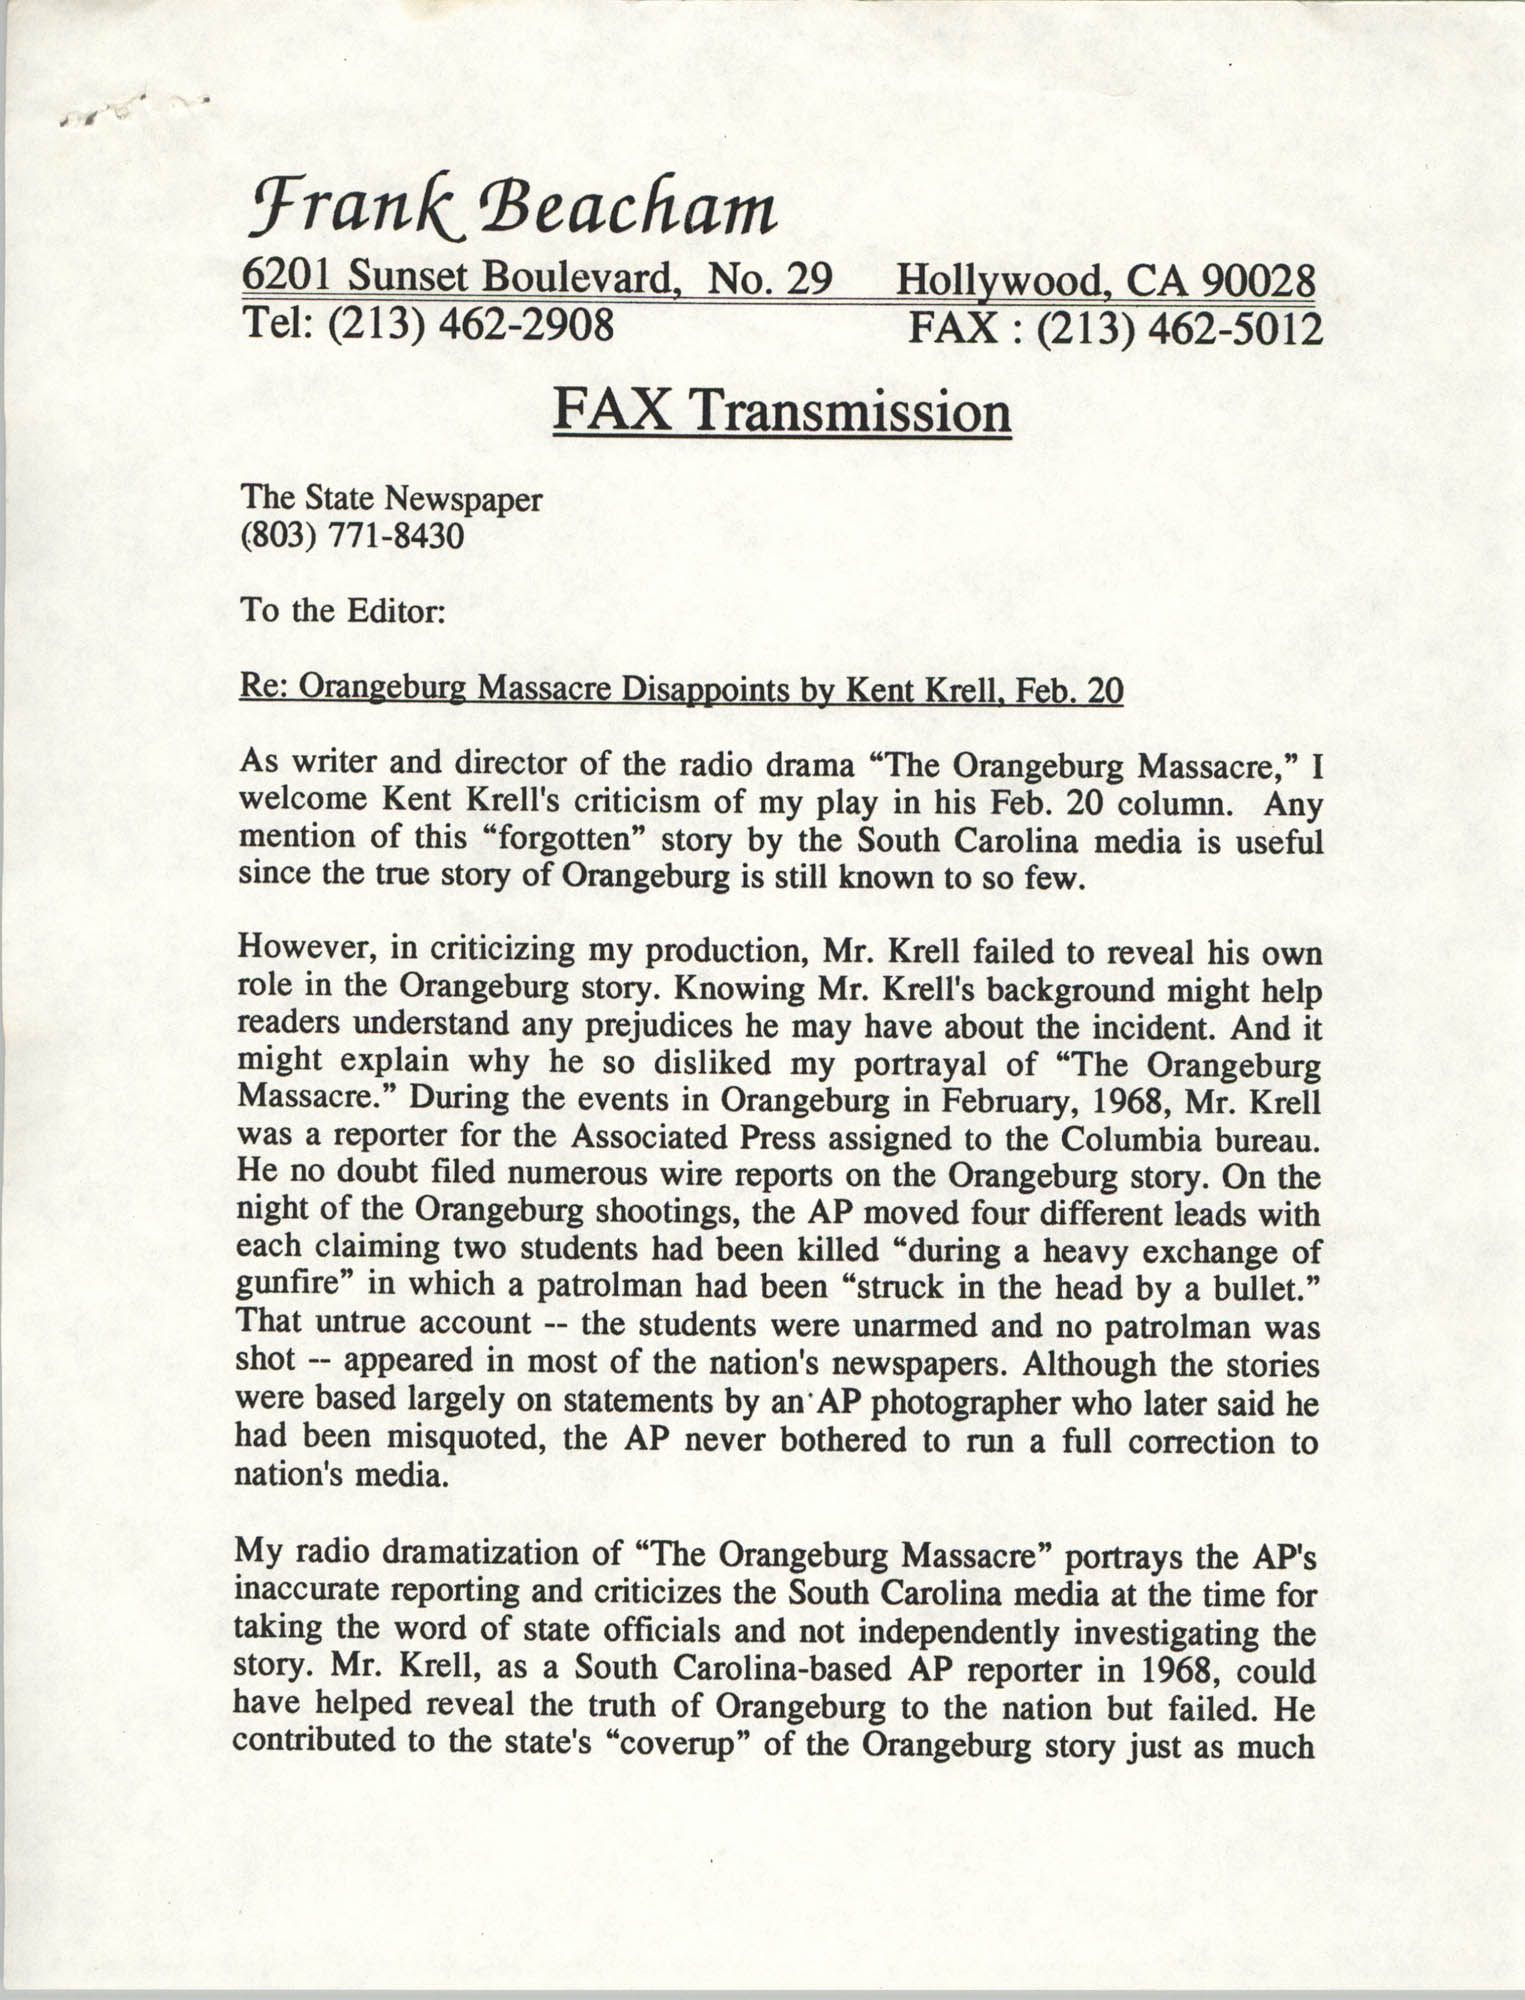 Correspondence from Frank Beacham to The State Newspaper